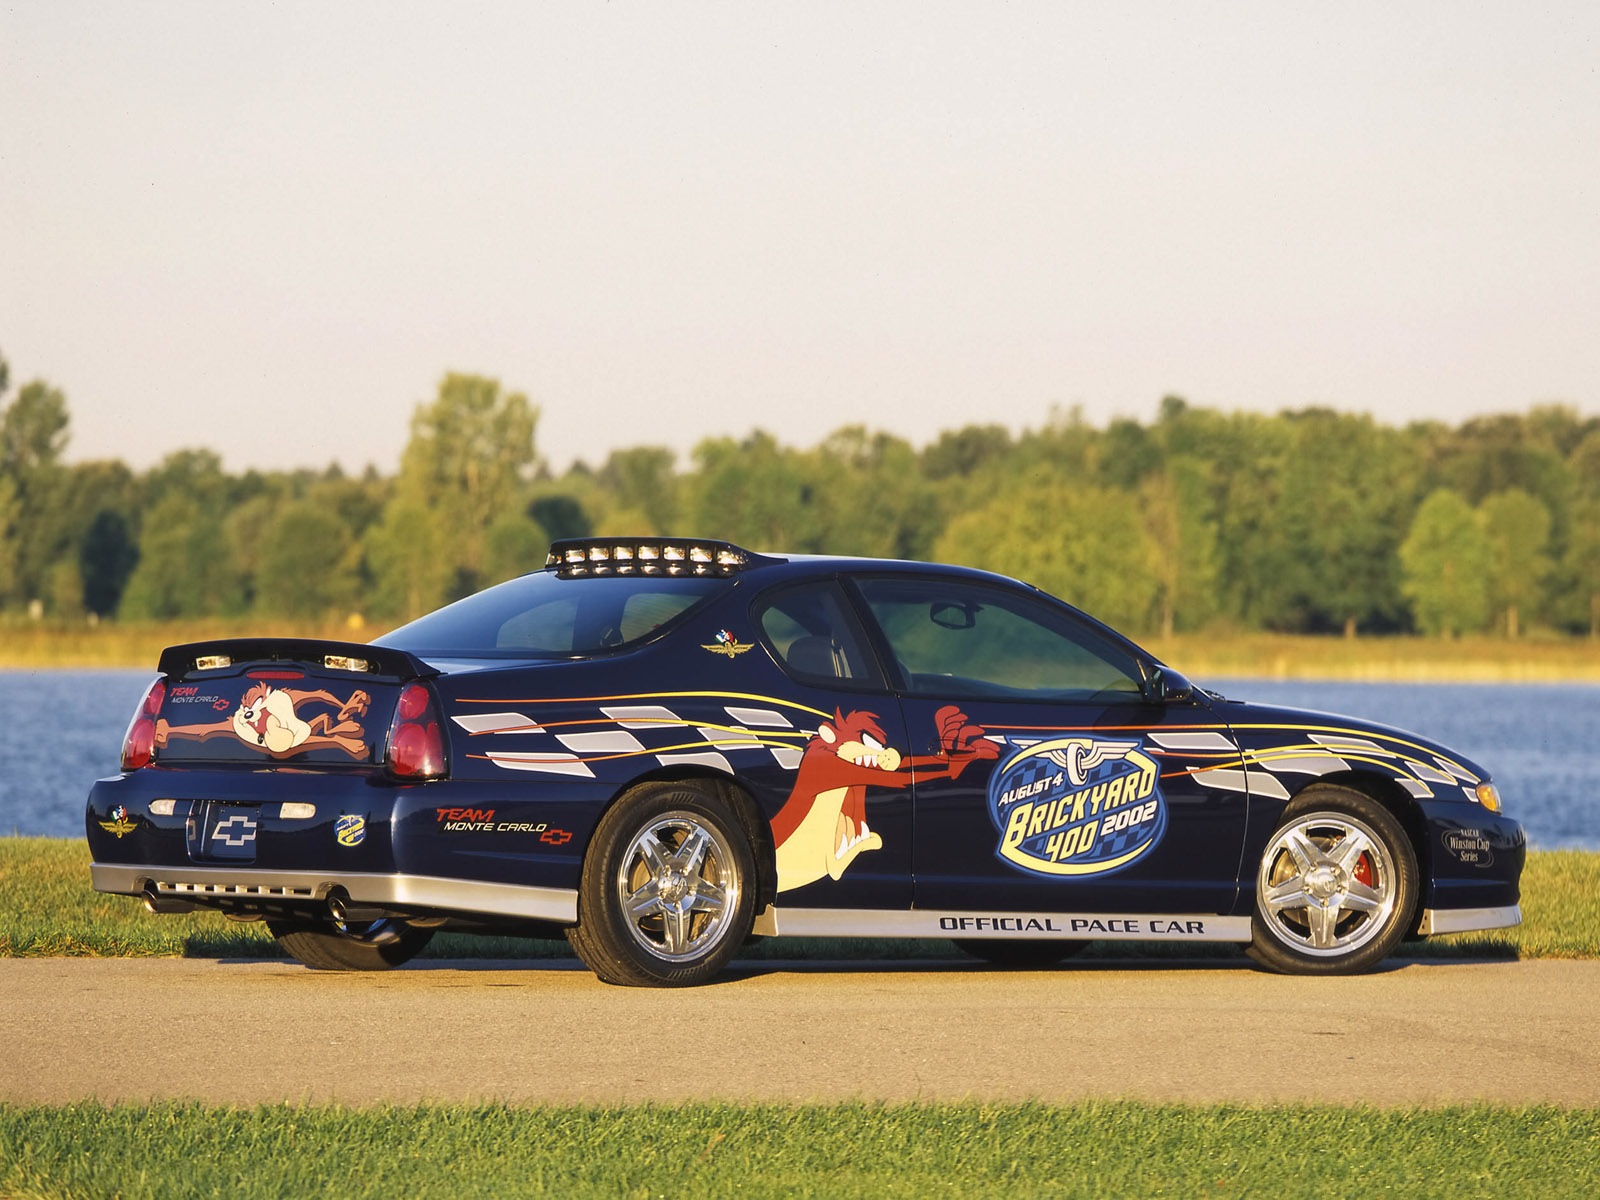 2018 Chevrolet Monte Carlo Brickyard Pace Car photo - 5